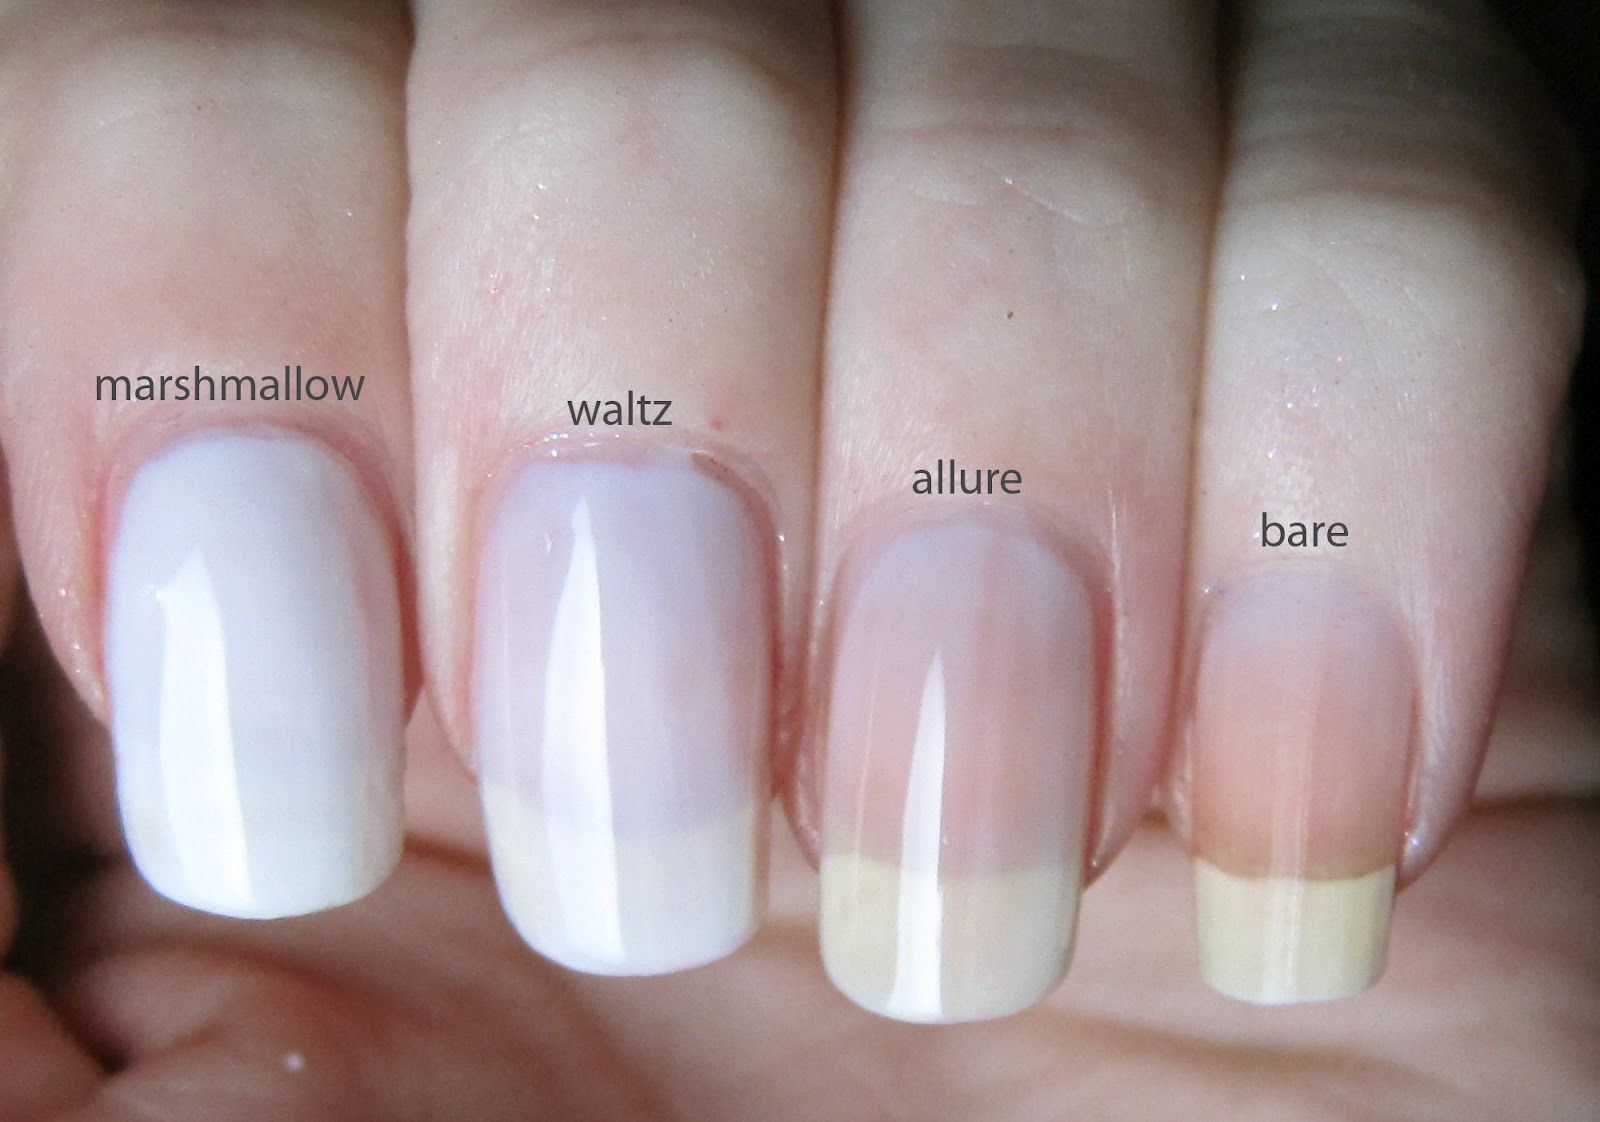 Here S A Comparison Of Some Essie Whites Marshmallow Waltz And Allure I Bought Them All On Separate Occasions Because Essie Nail Nail Polish Opi Gel Nails